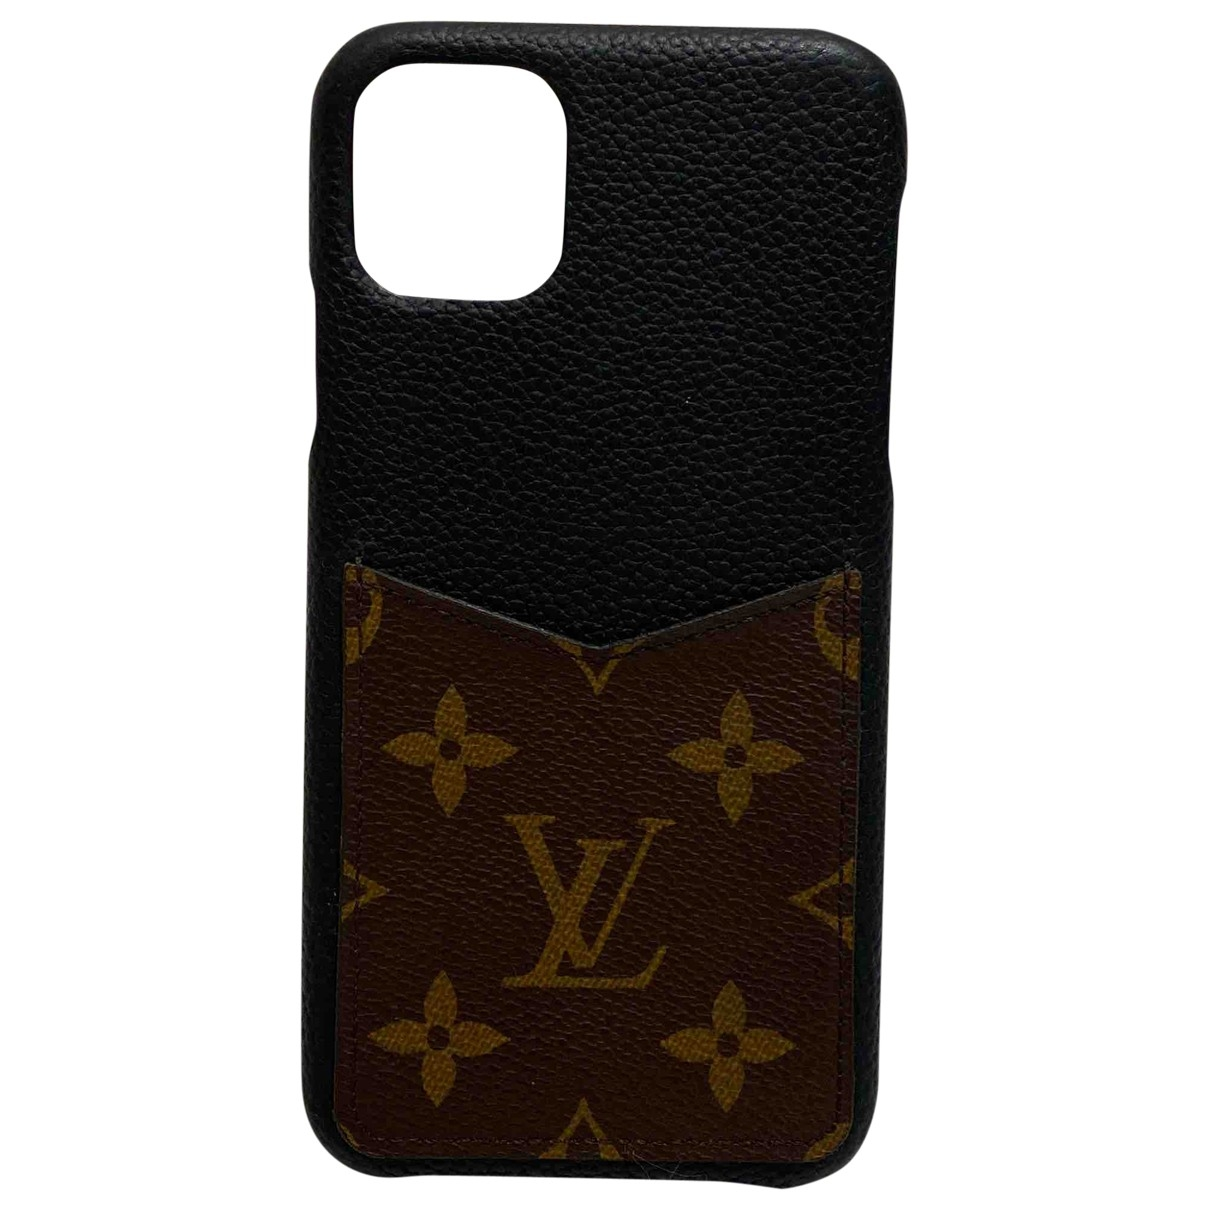 Funda iphone de Cuero Louis Vuitton